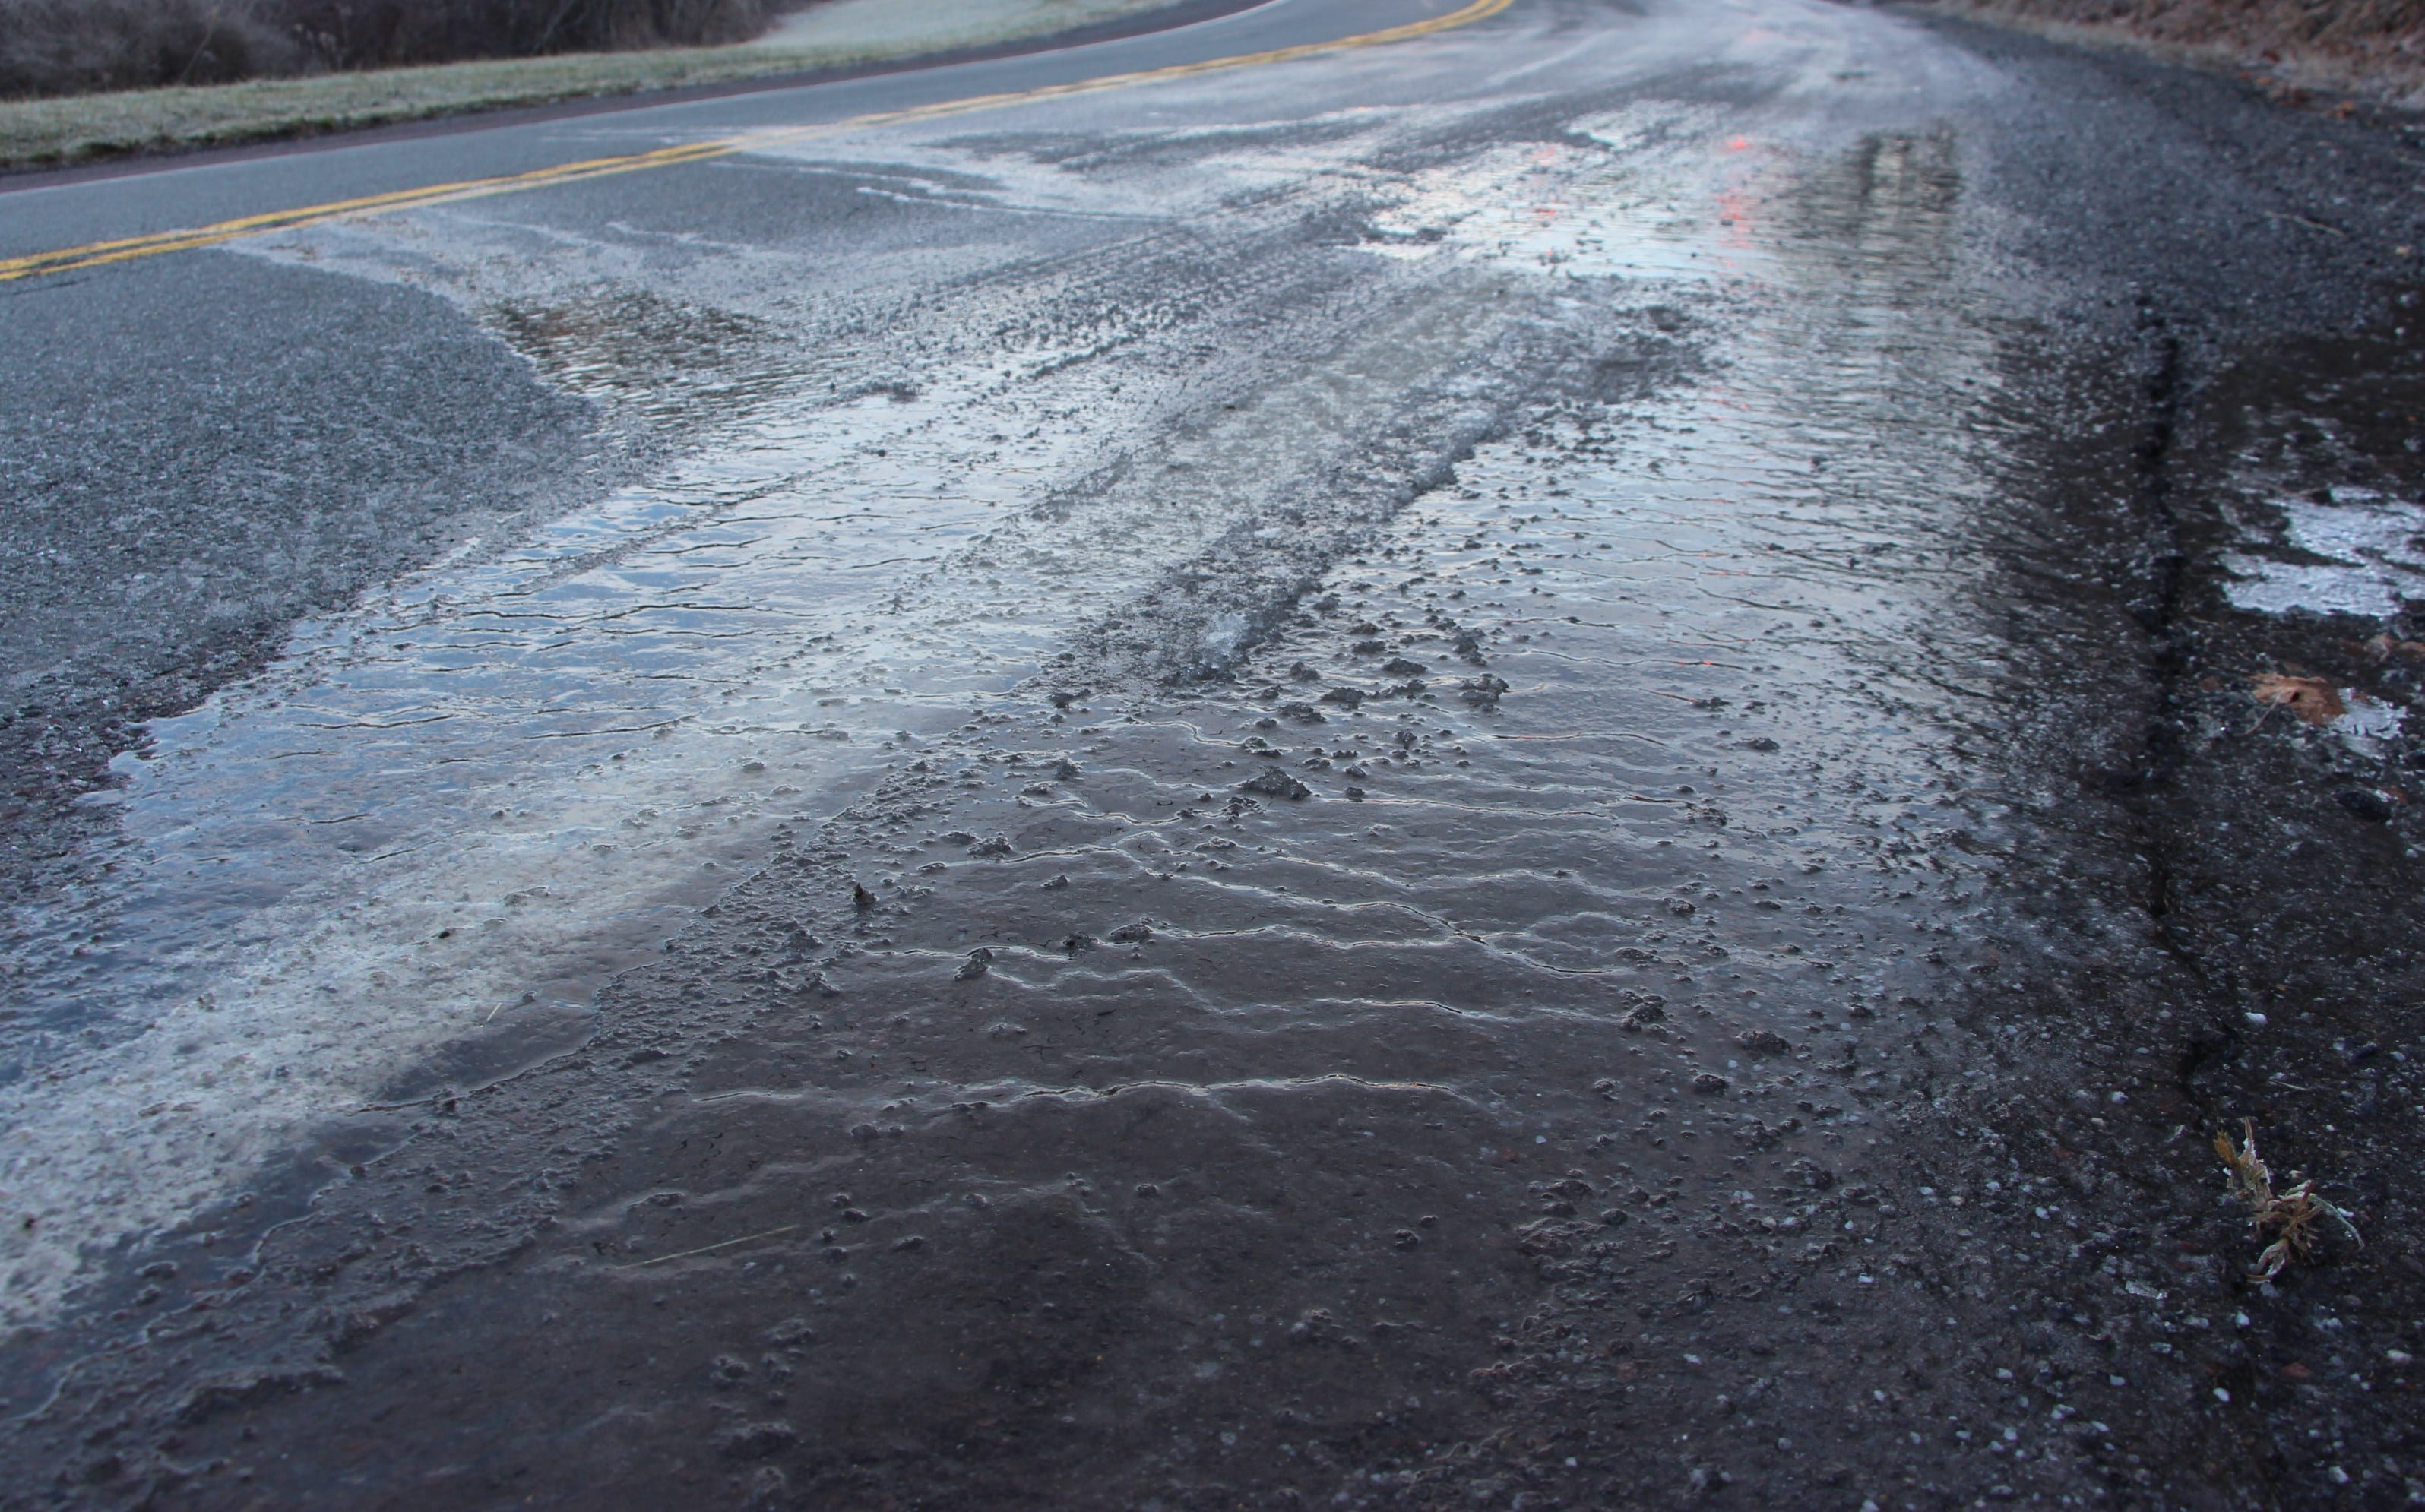 Black Ice on Asphalt